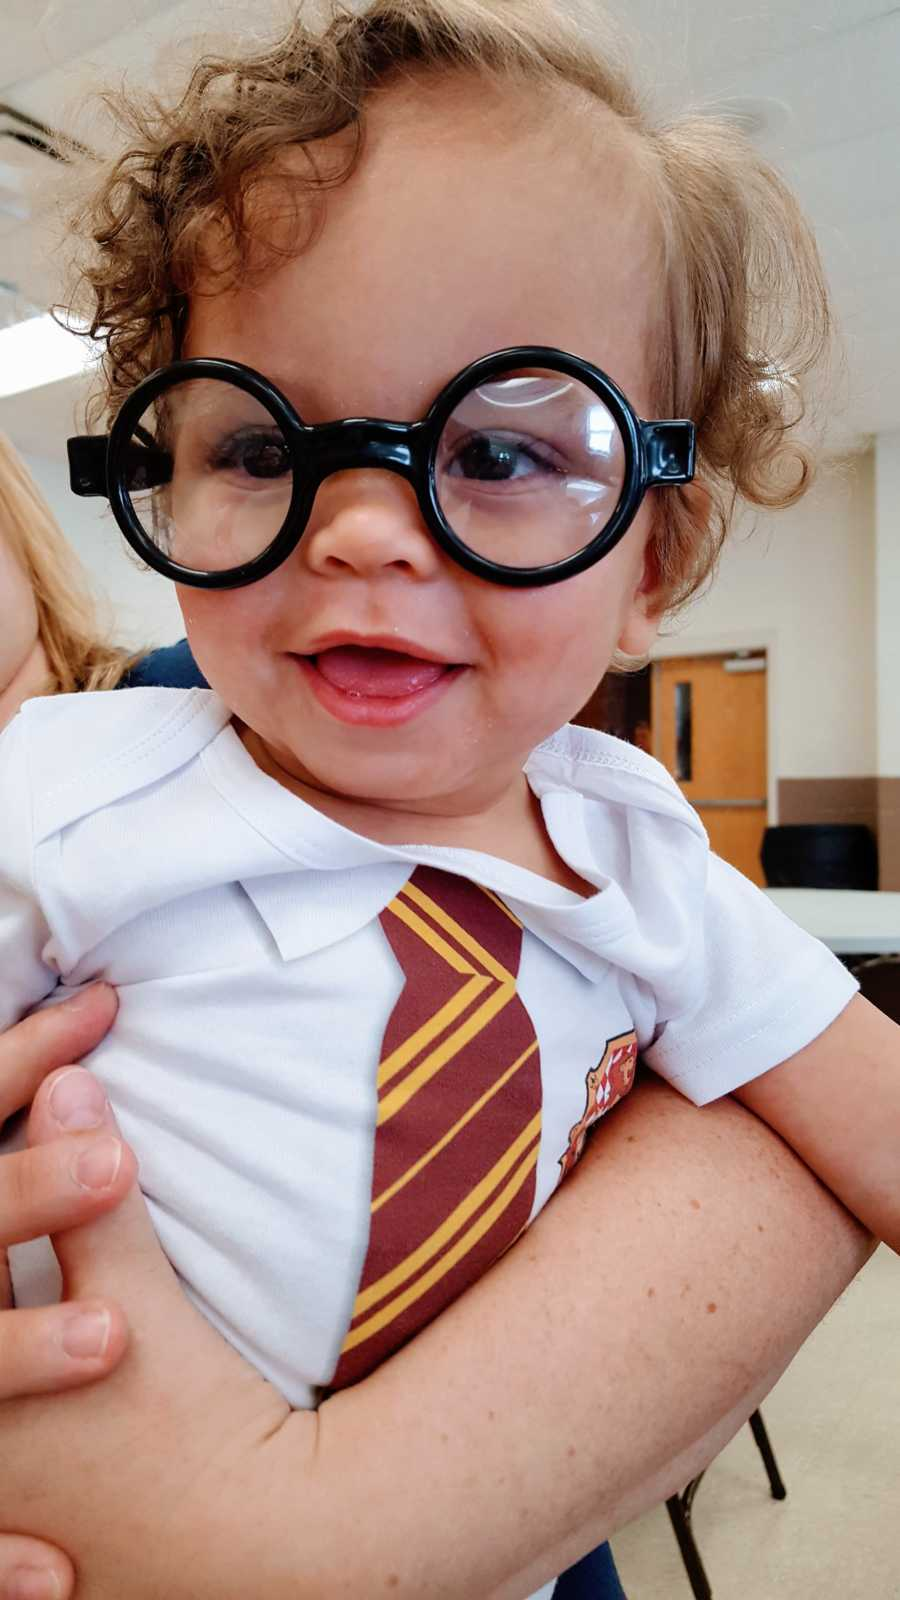 Little boy born during Harry Potter weekend smiles in Harry Potter onesie and glasses